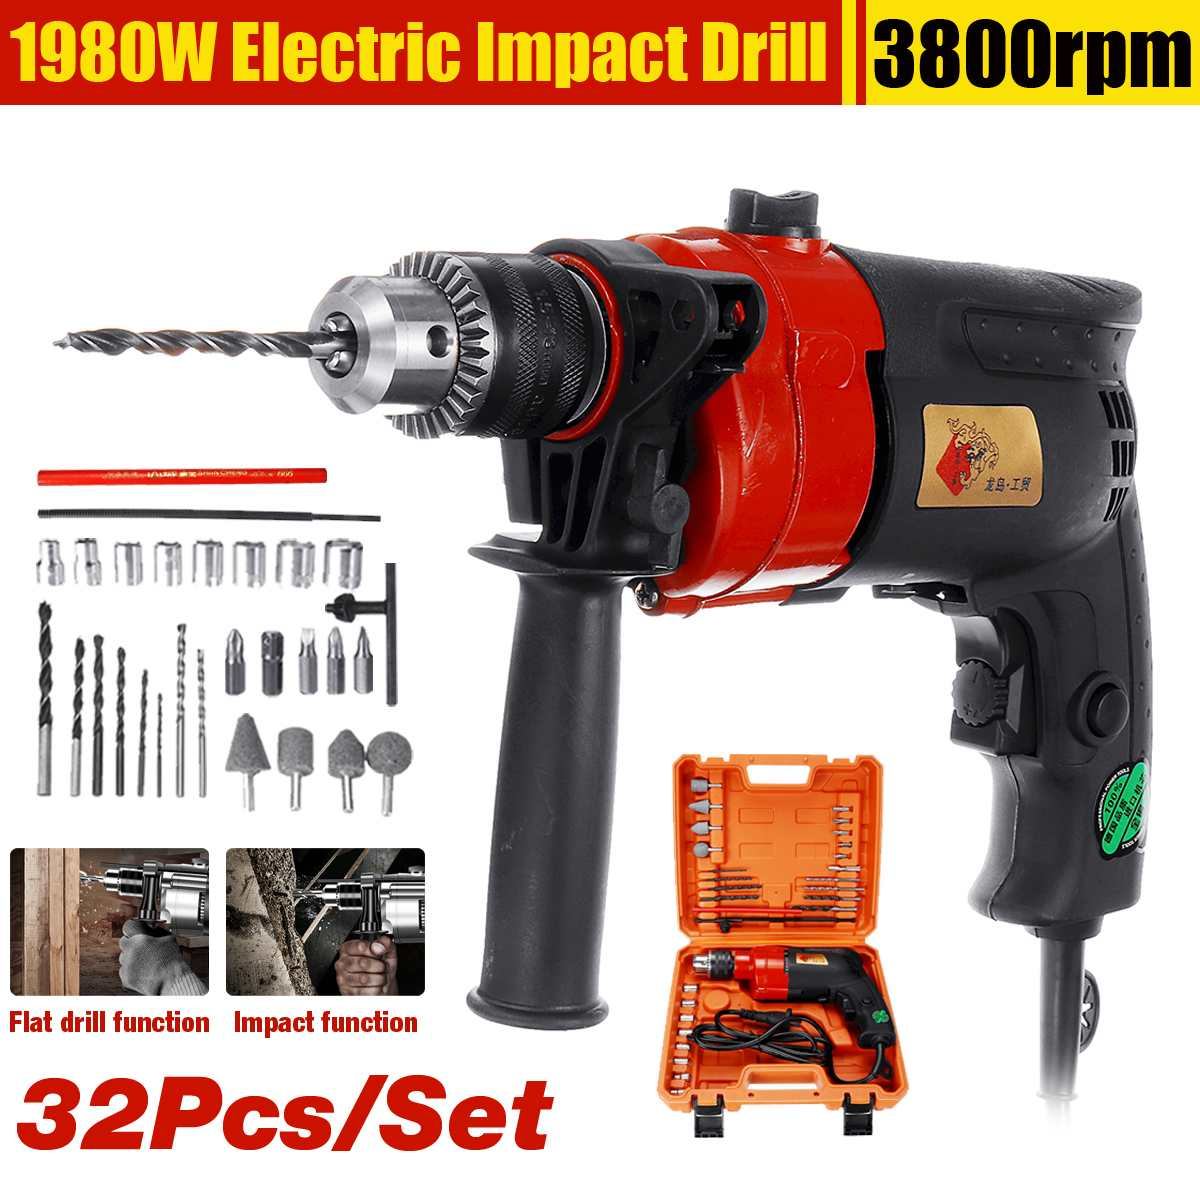 32Pcs 1980W Electric Brushless Impact Drill Drilling Guns Impact electric drill Electric Rotary Hammer Torque Driver Tool|Electric Drills| |  - title=